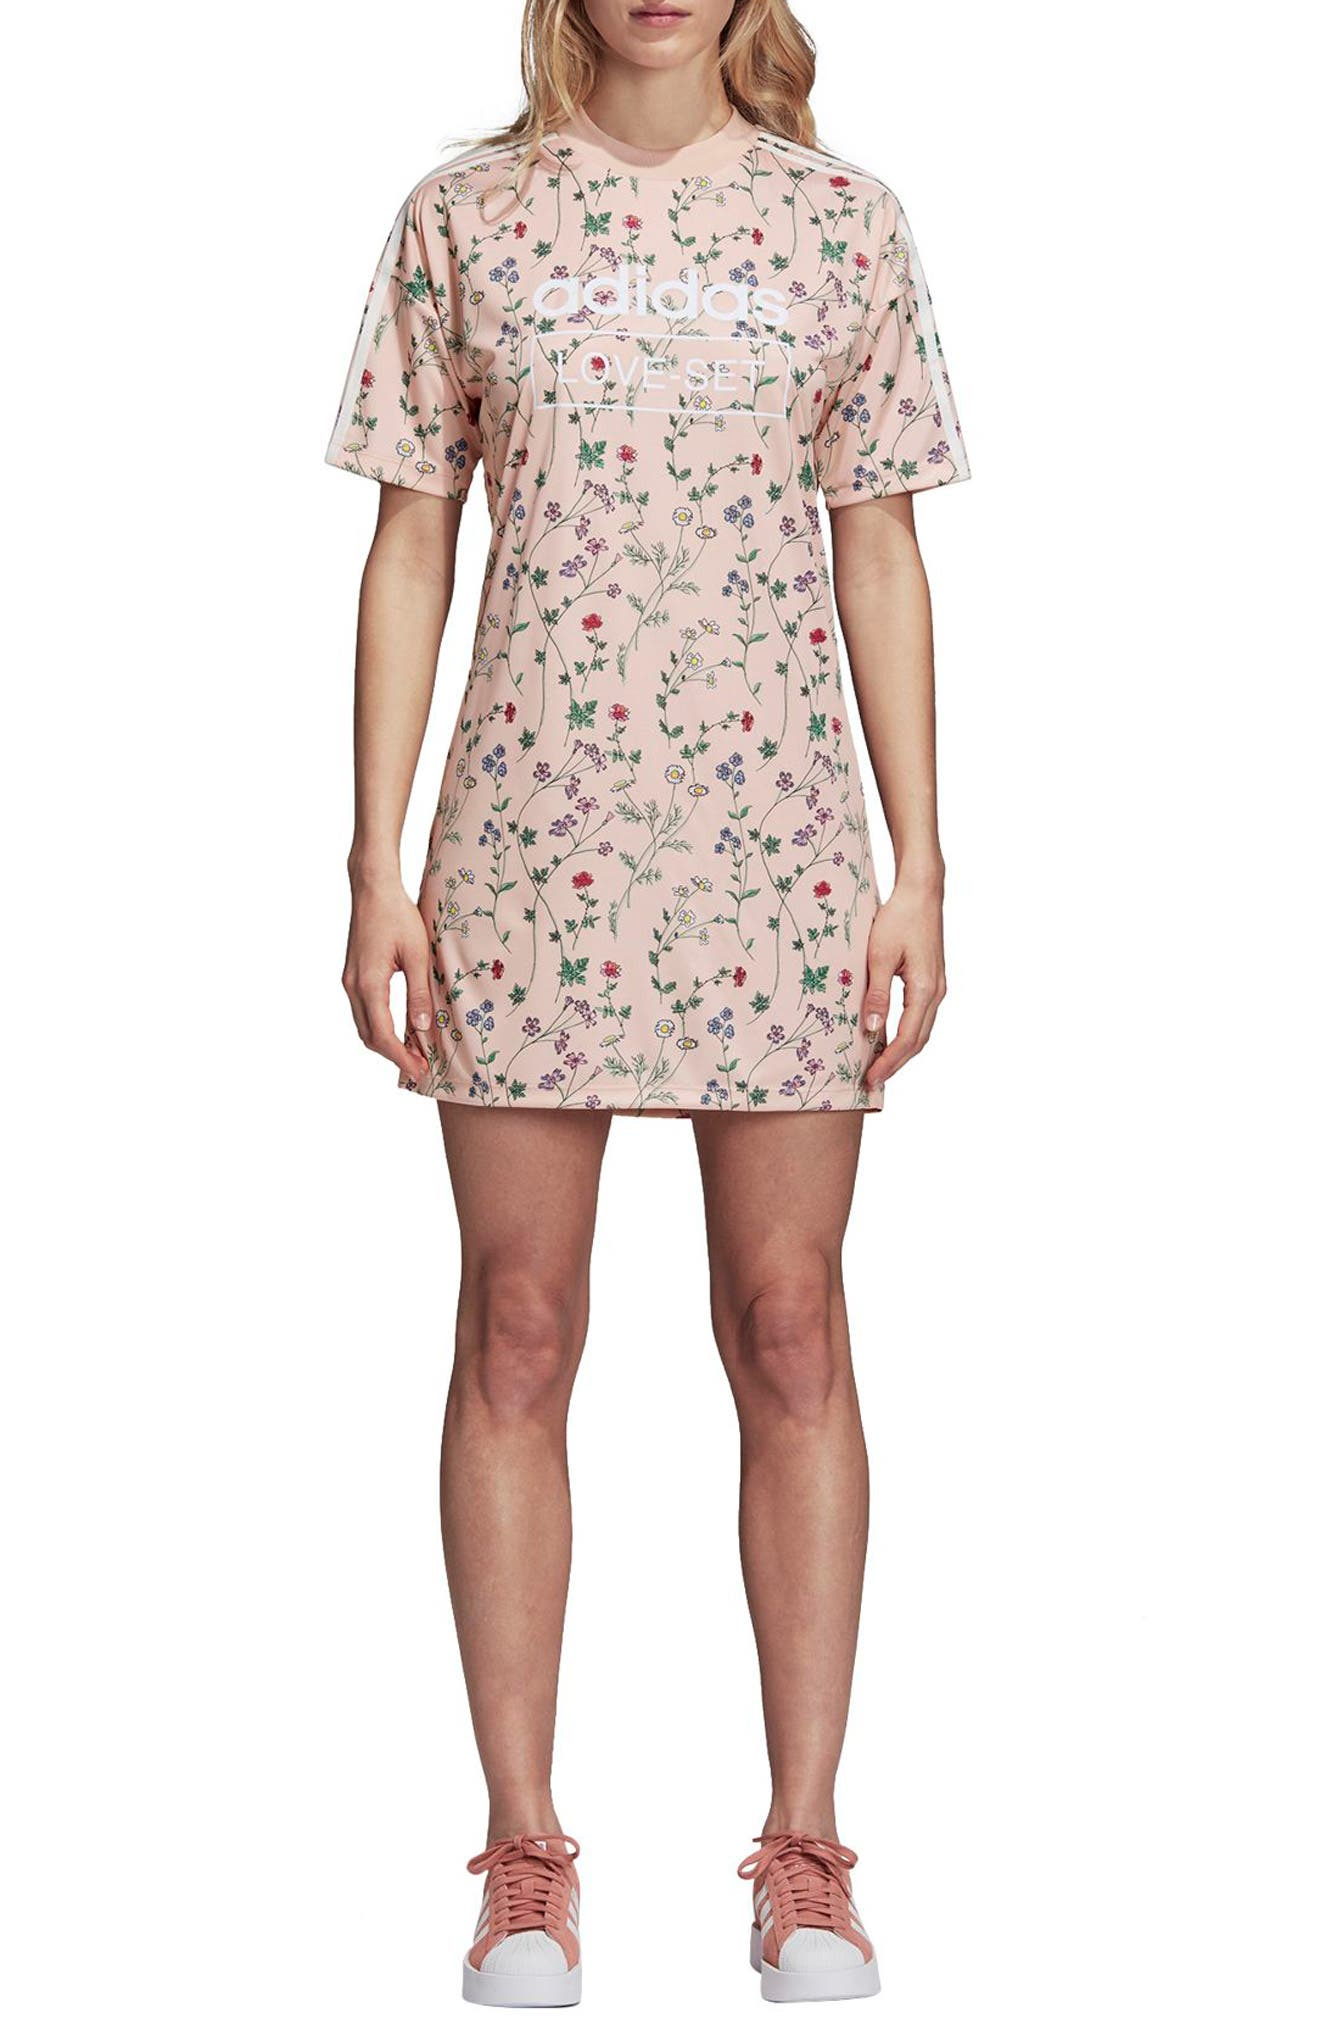 Originals Floral Graphic Dress,                             Main thumbnail 1, color,                             Pink - Flower Aop